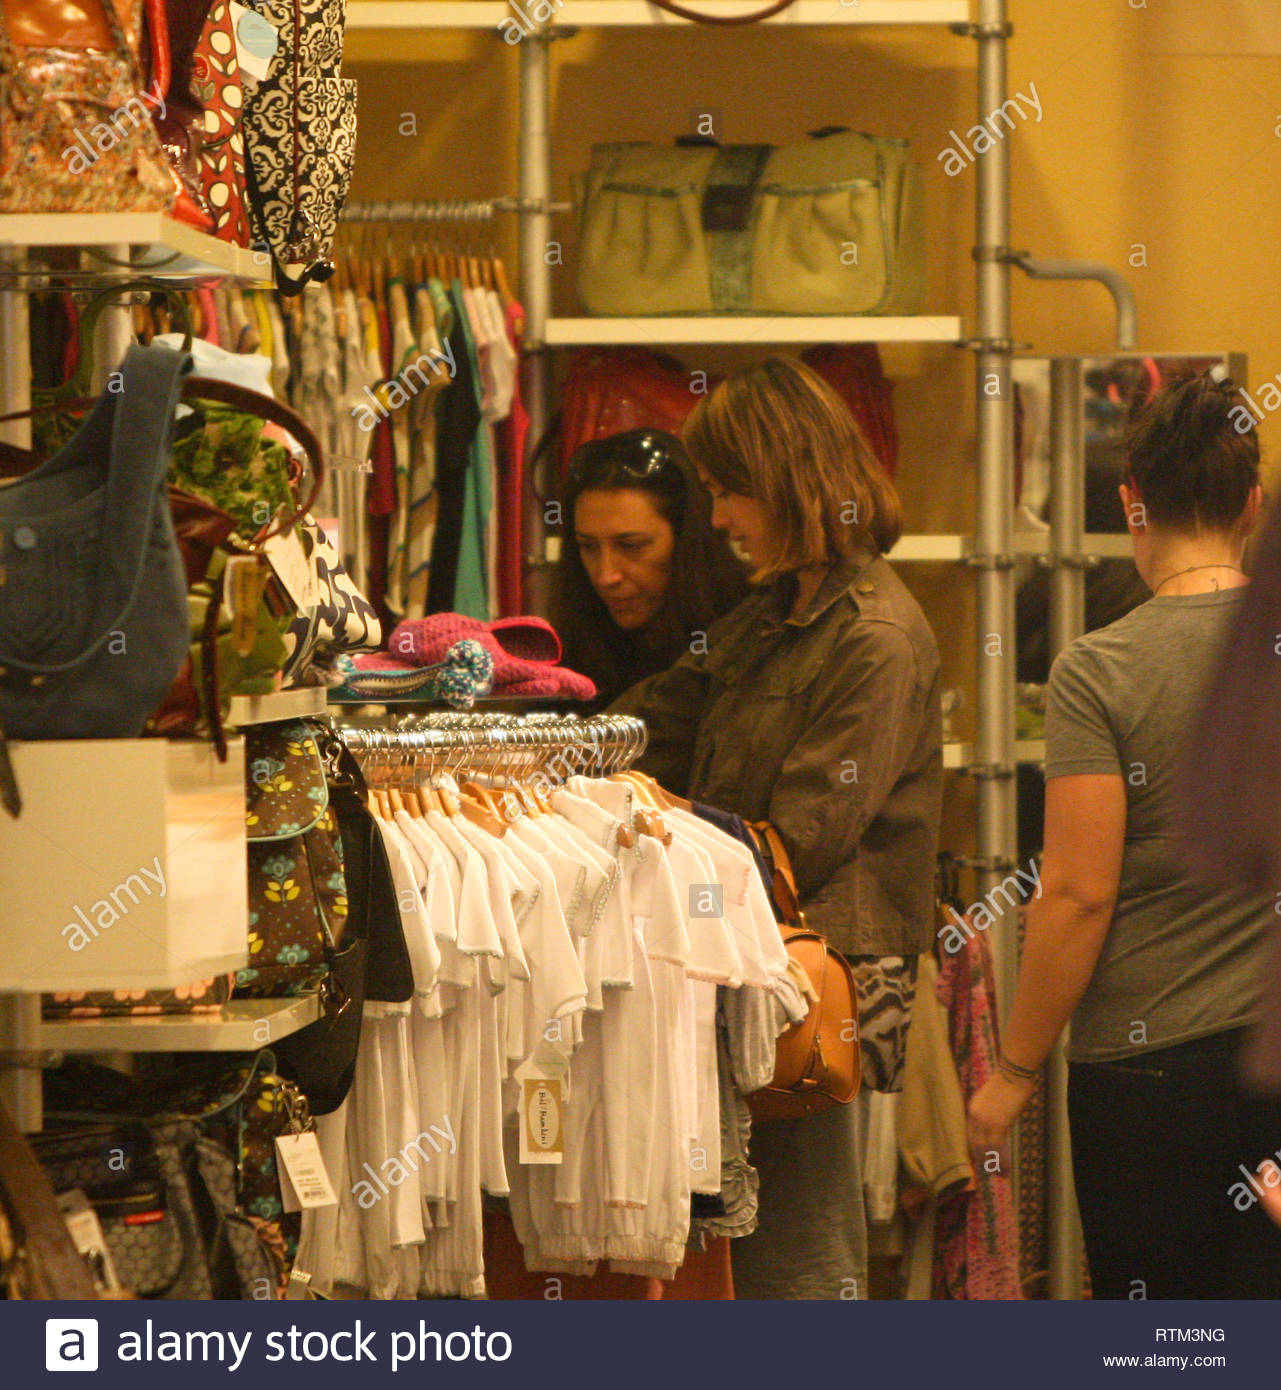 e386614a239 Jessica Alba shopping at Bel Banbini baby boutique in Los Angeles CA  01 18 11 Fontoura AKM Images USA.